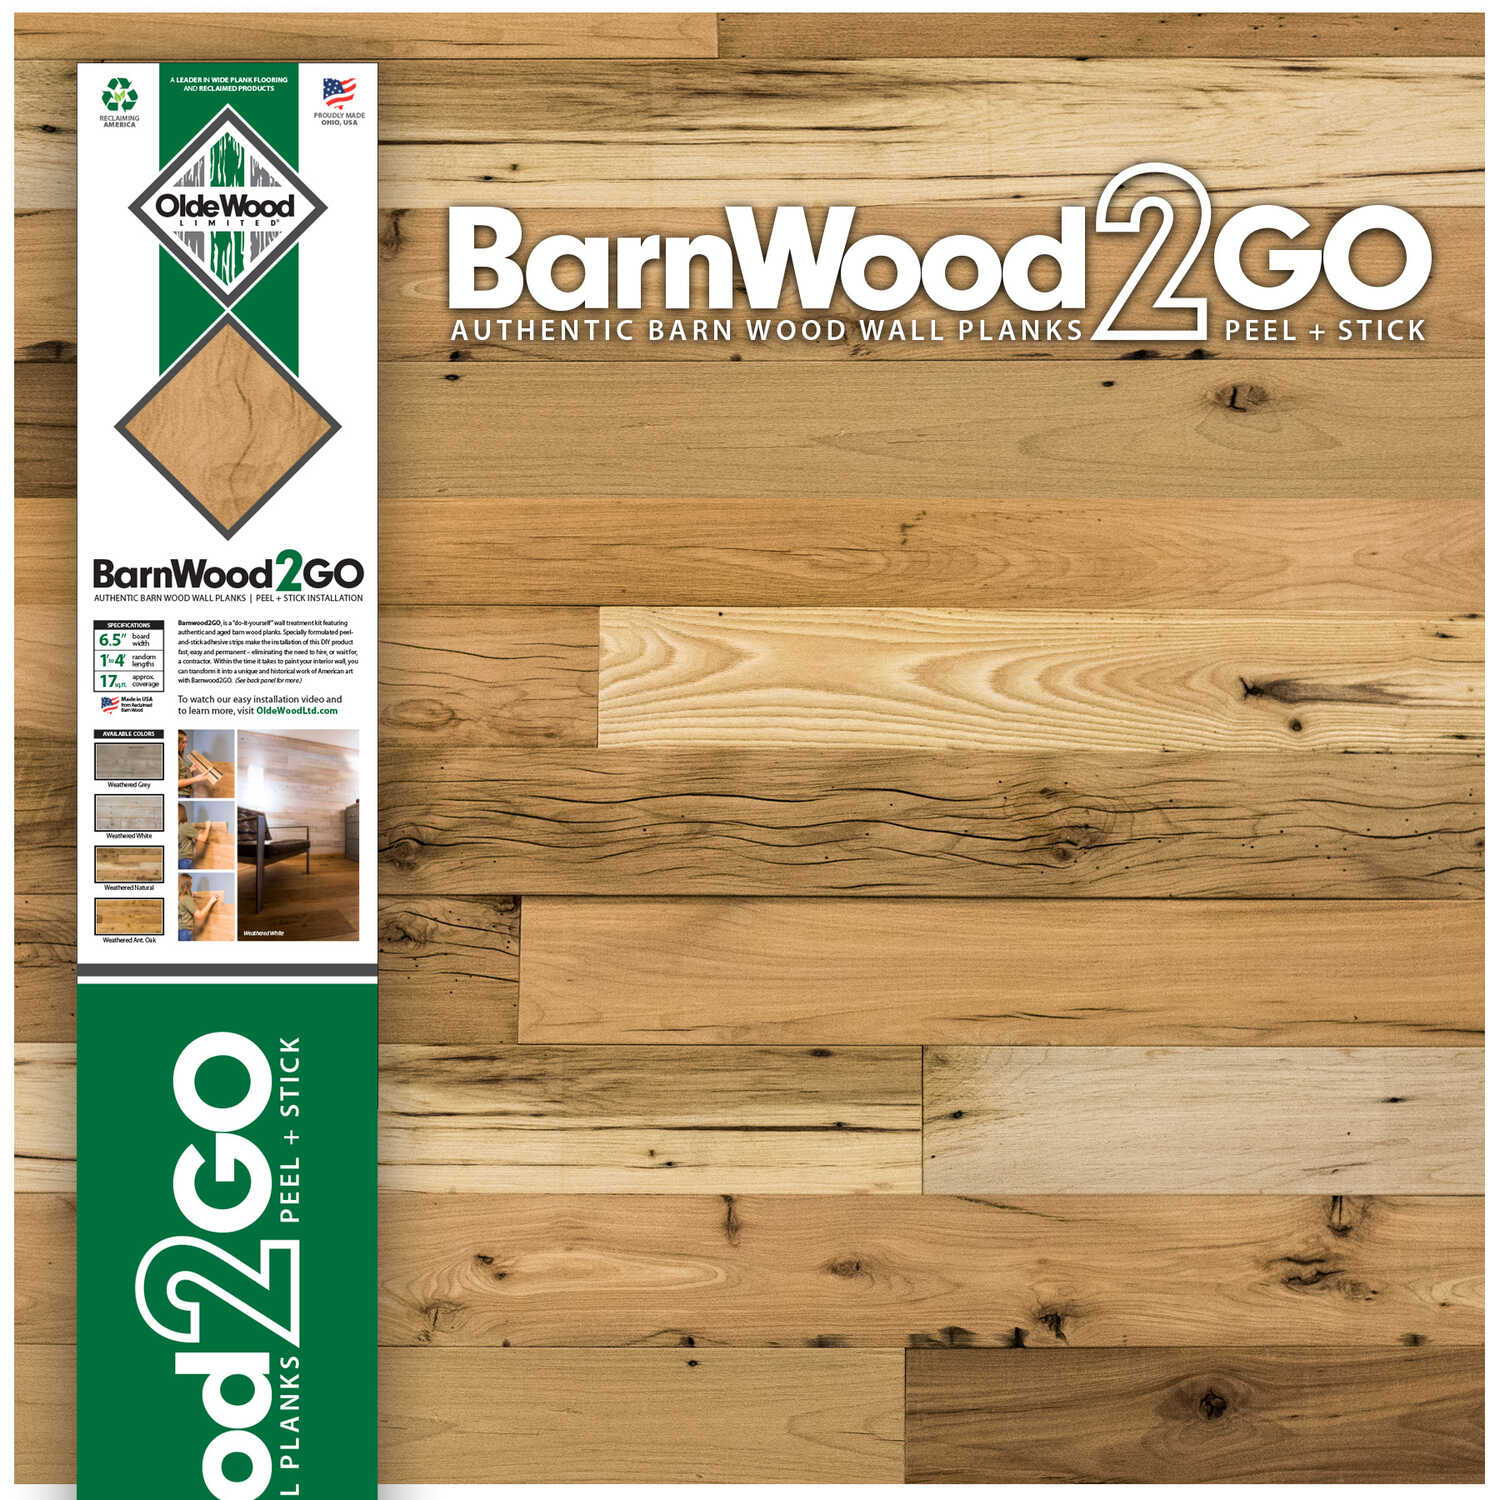 OldeWood Limited  BarnWood2GO  5/16 in. H x 5-1/2 in. W x 48 in. L Weathered  Natural  Wood  Wall Pl